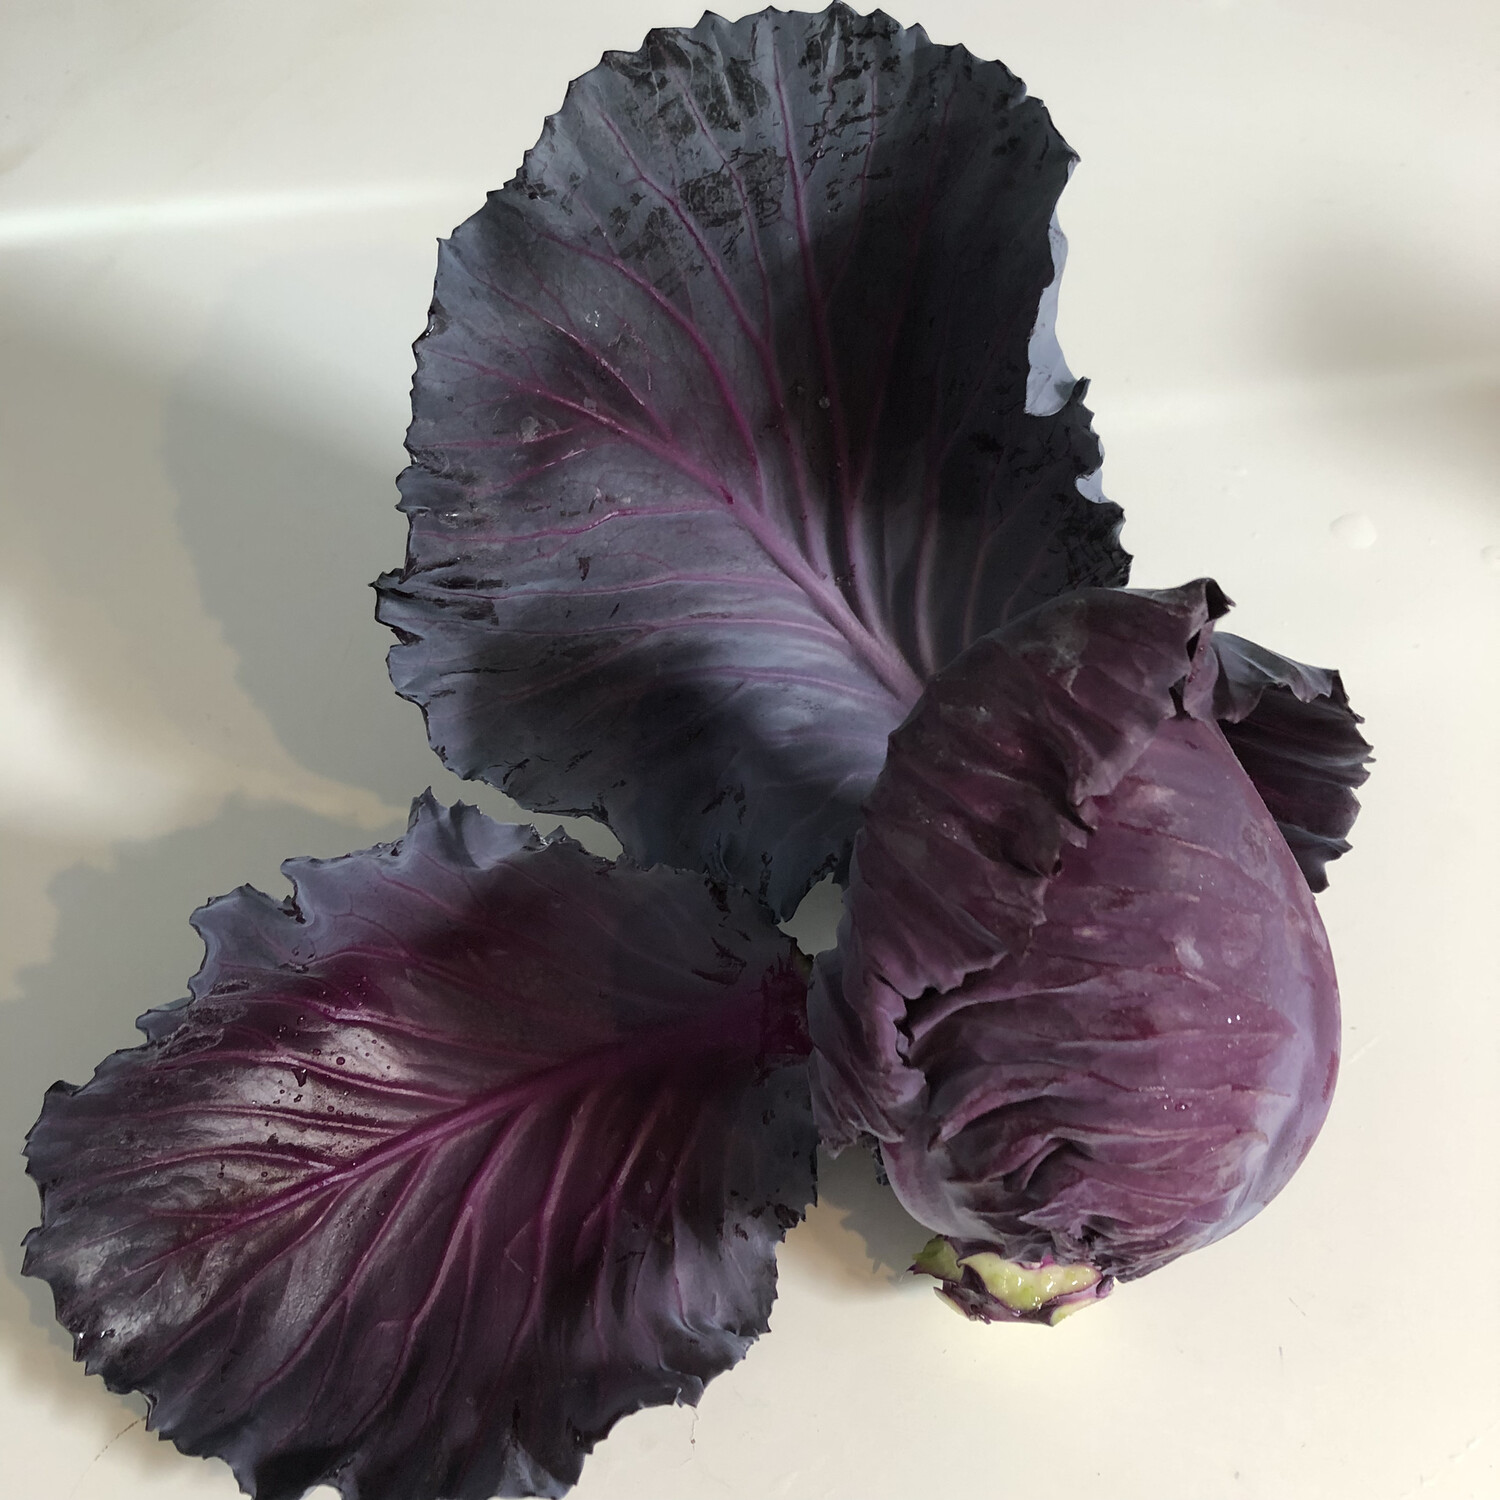 Red Cabbage - 1lb - $2